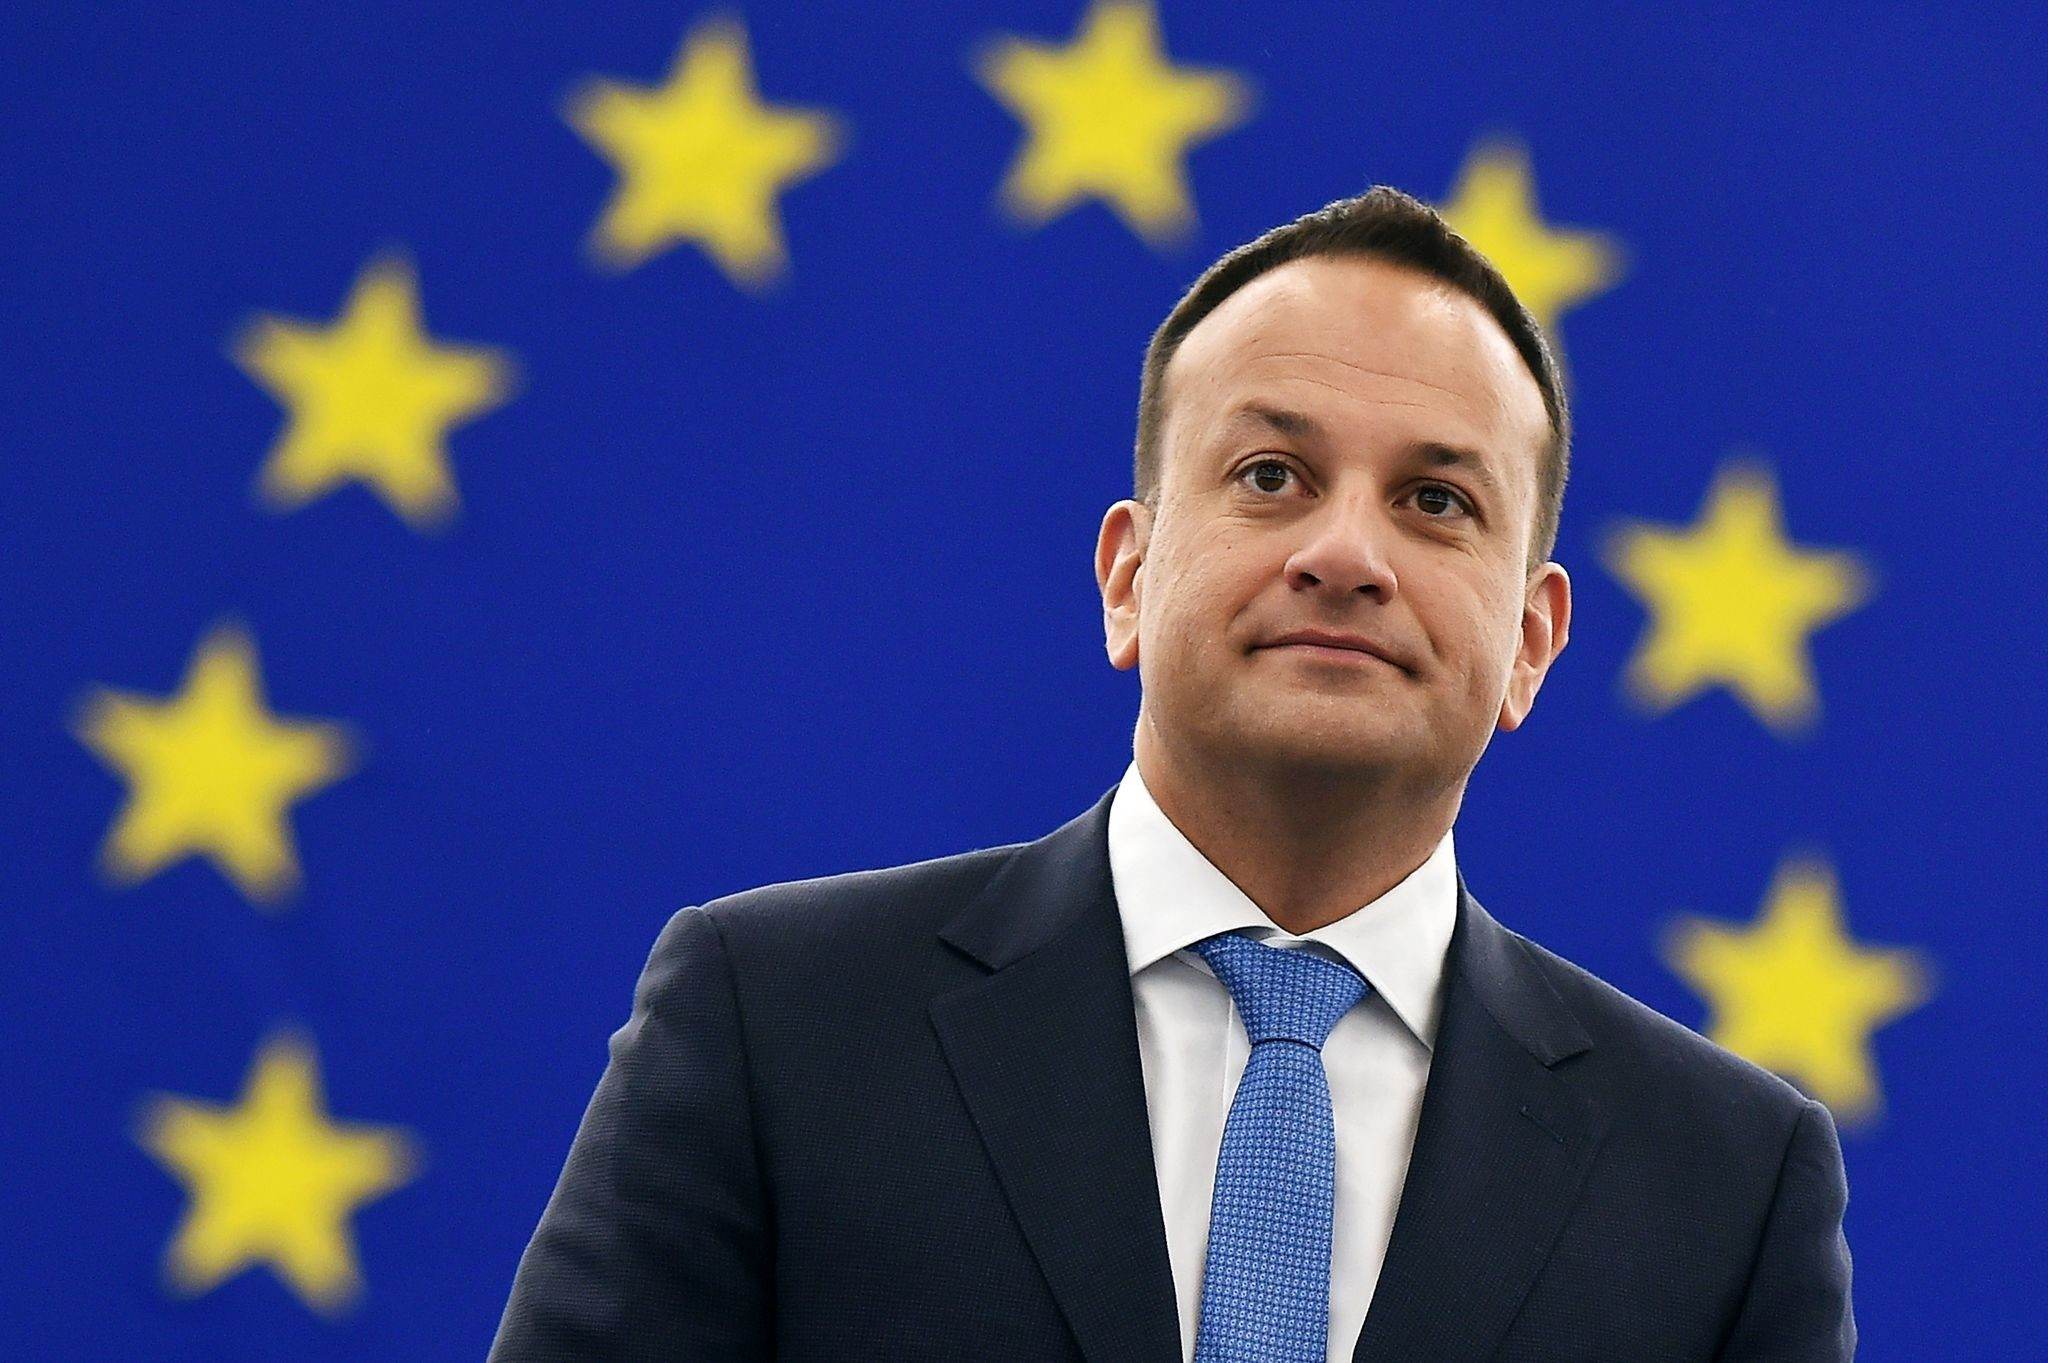 Irish Prime minister Leo Varadkar looks on prior to attend a debate during a plenary session at the European Parliament on January 17, 2018 in Strasbourg, eastern France. (AFP Photo)